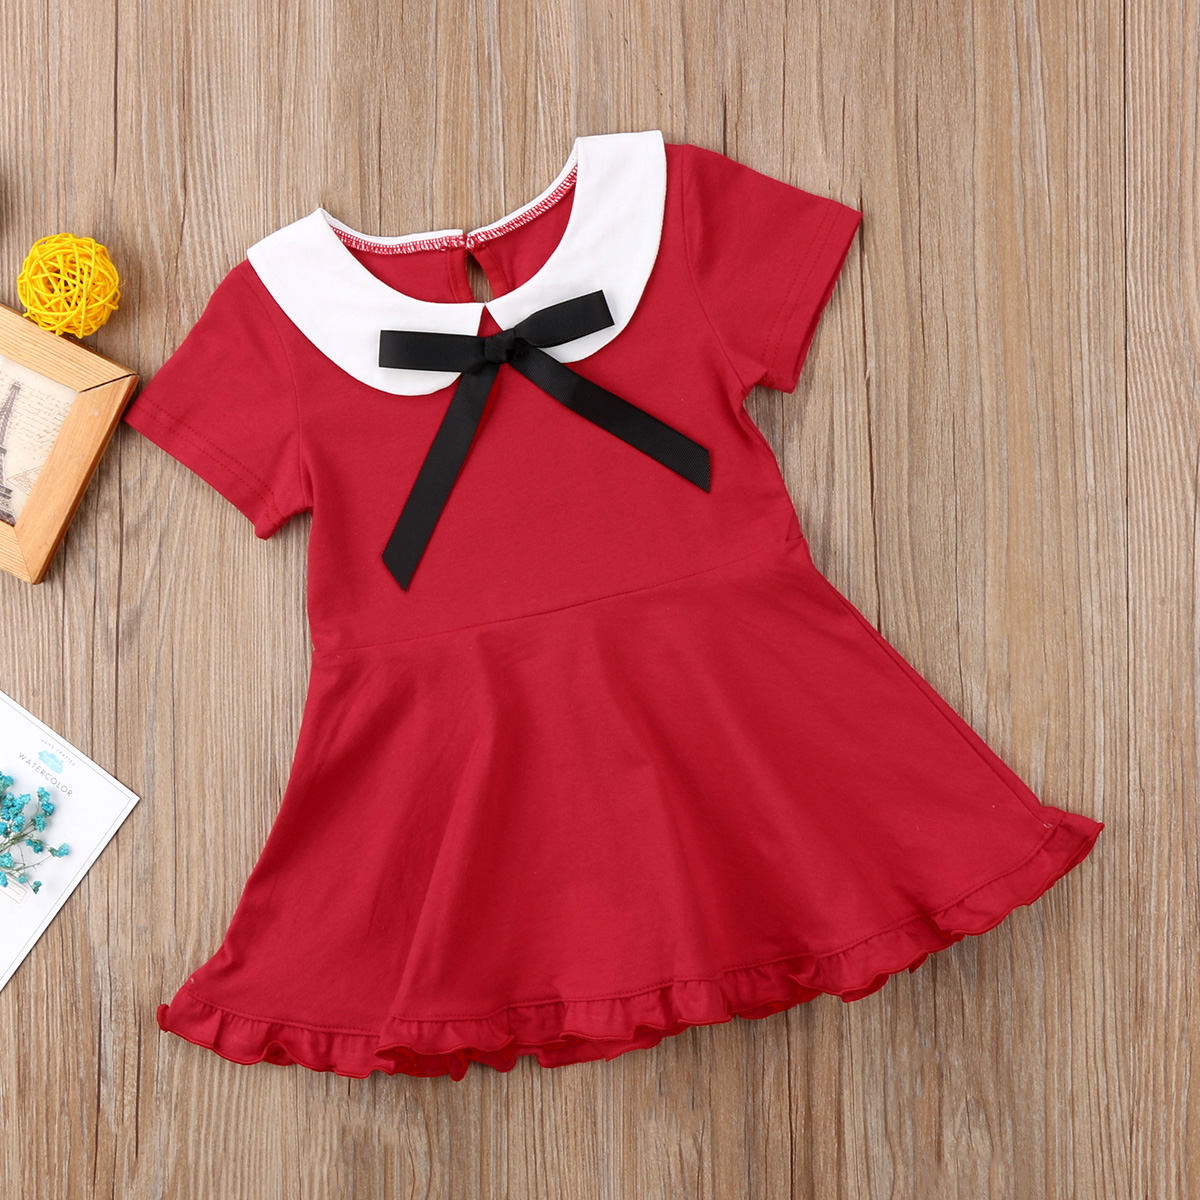 Dresses Beautiful 2018 Brand New Toddler Infant Kids Baby Girl Pink Princess Tutu School Party Solid Dresses Preppy Style Sleeveless Sundress 1-6t